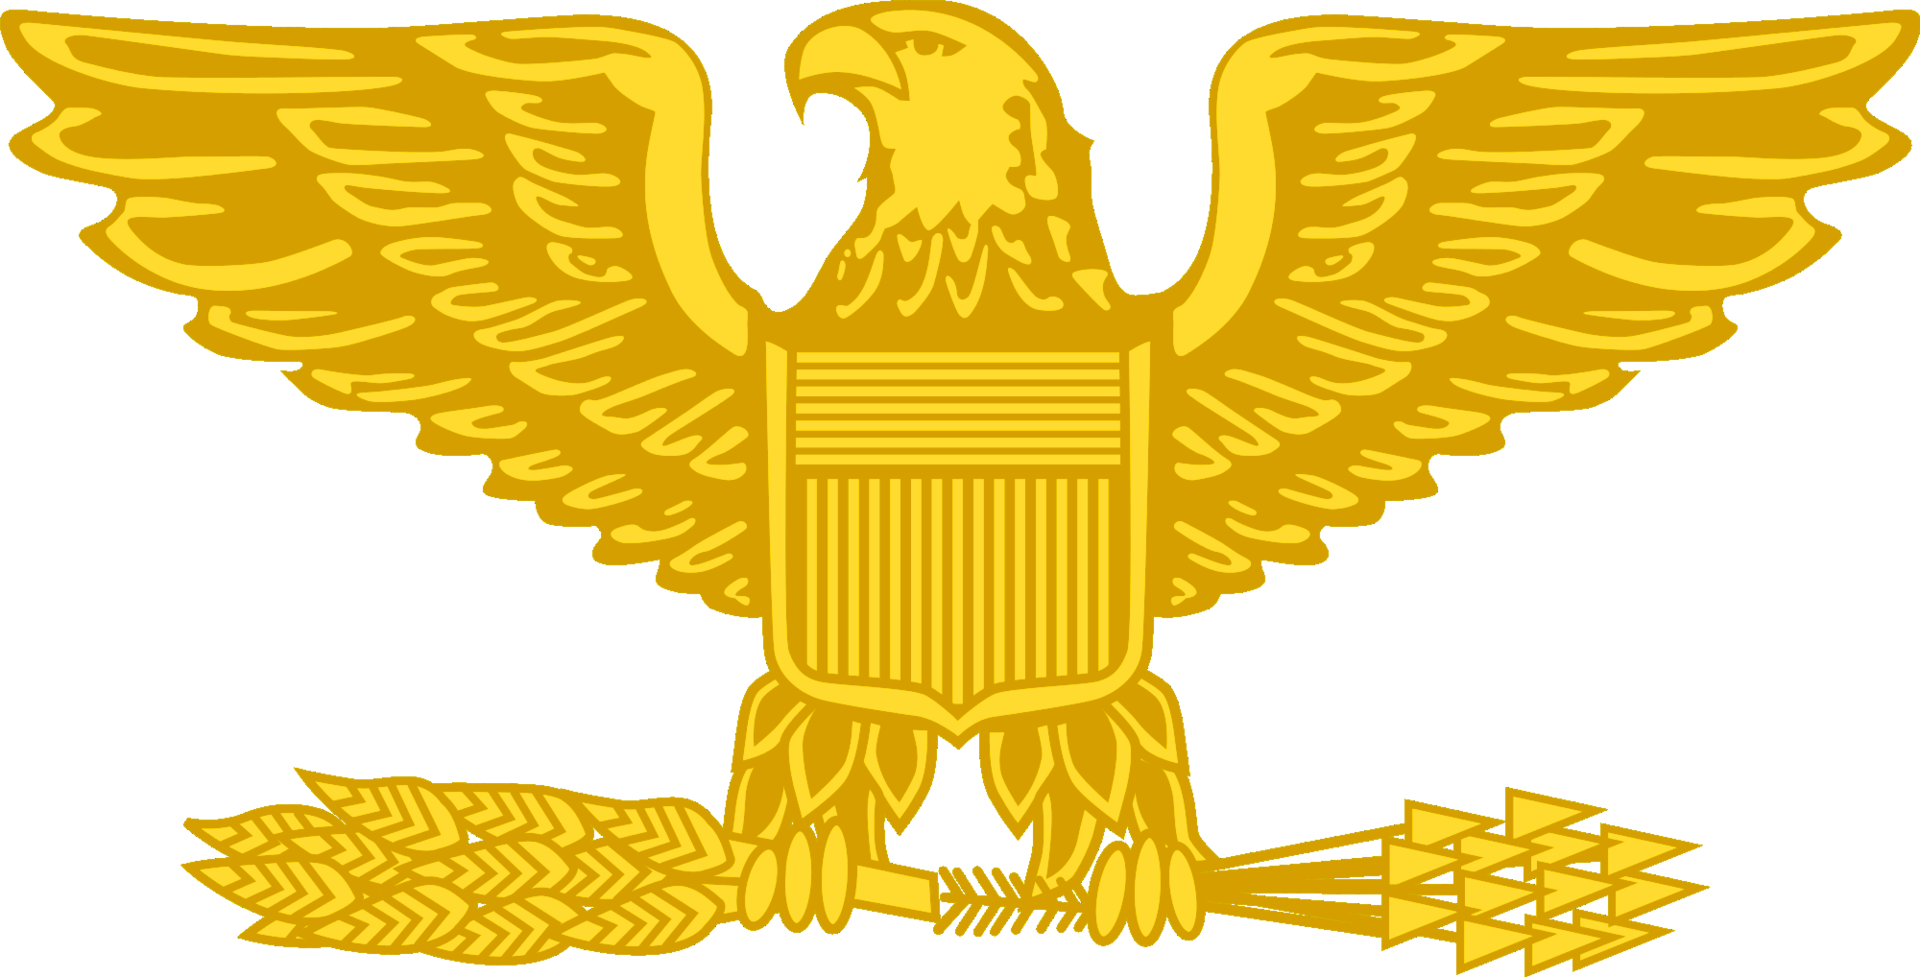 File:Colonel Gold eagle.png.